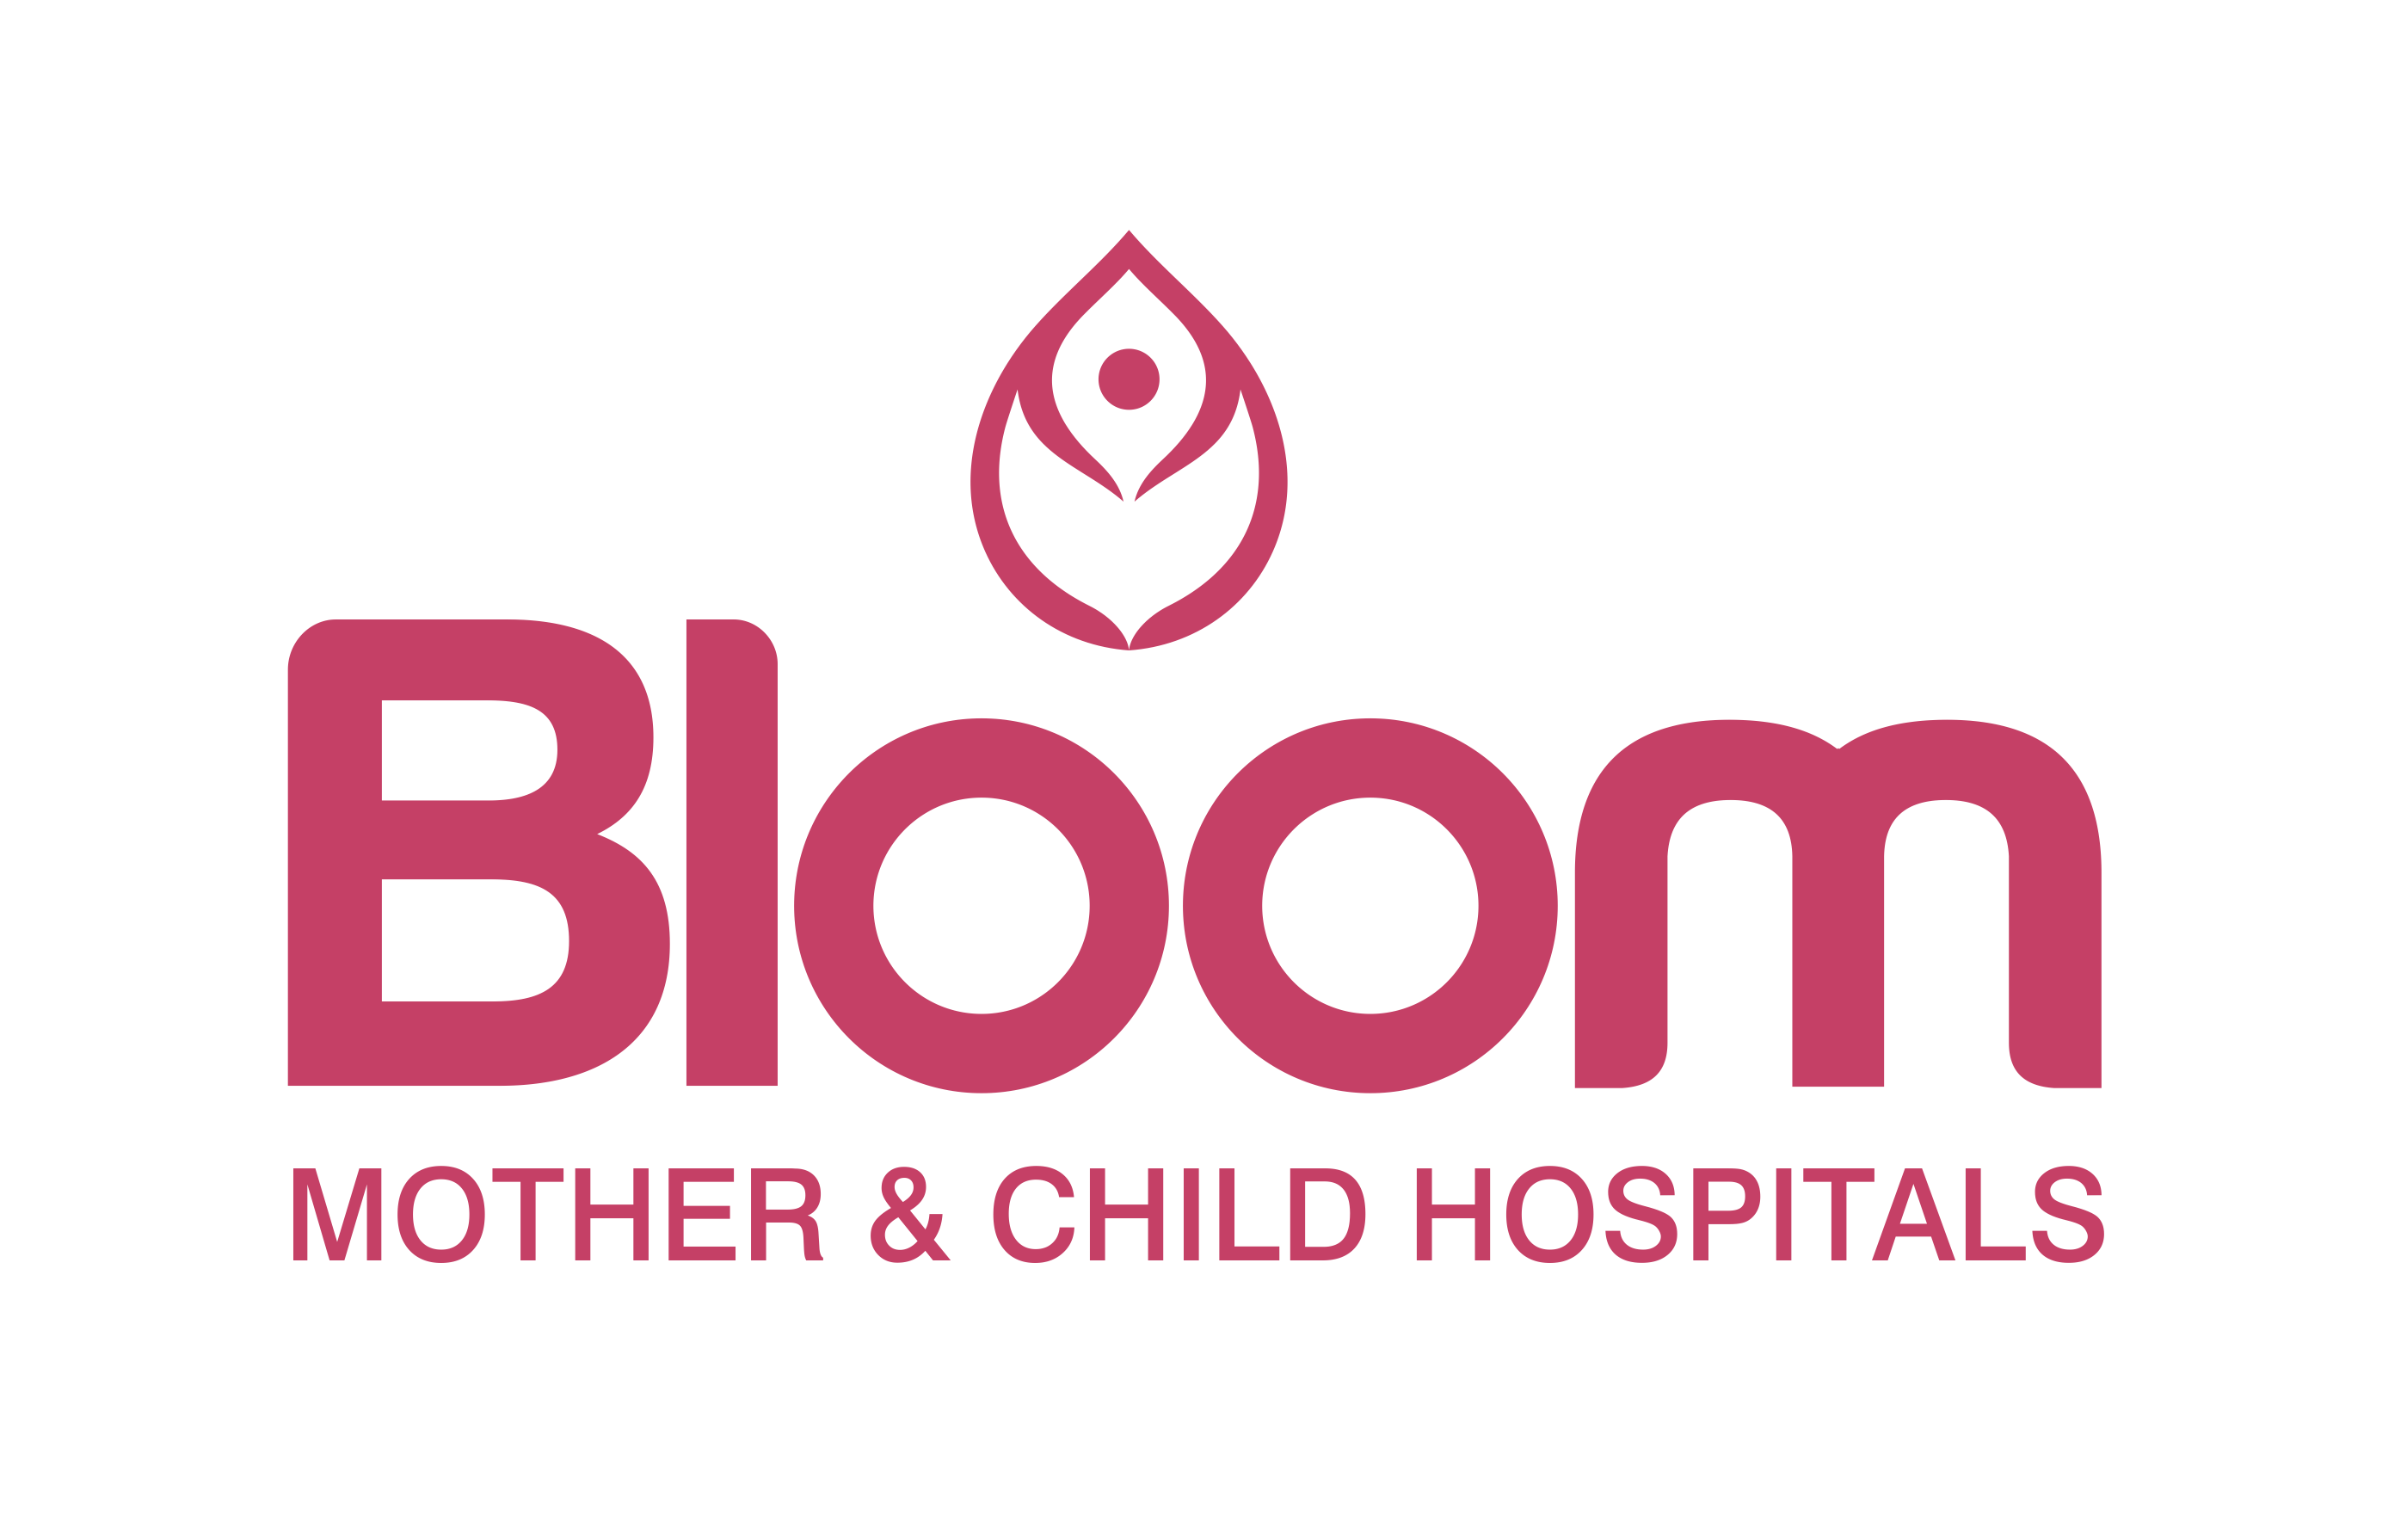 Bloom Mother & Child Hospital - Sikh Village, Hyderabad